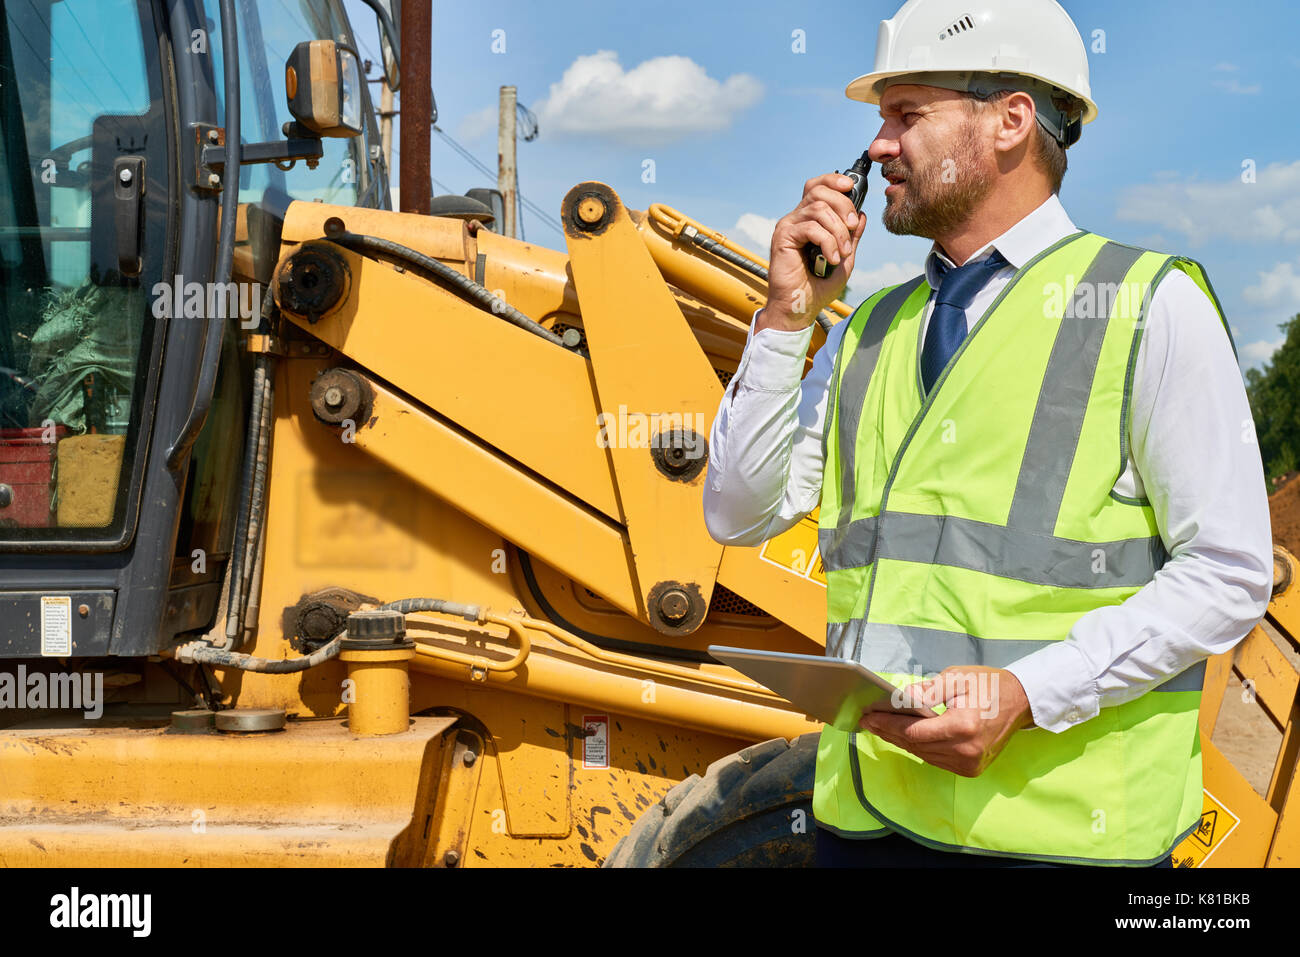 Busy Construction Worker in Suit - Stock Image